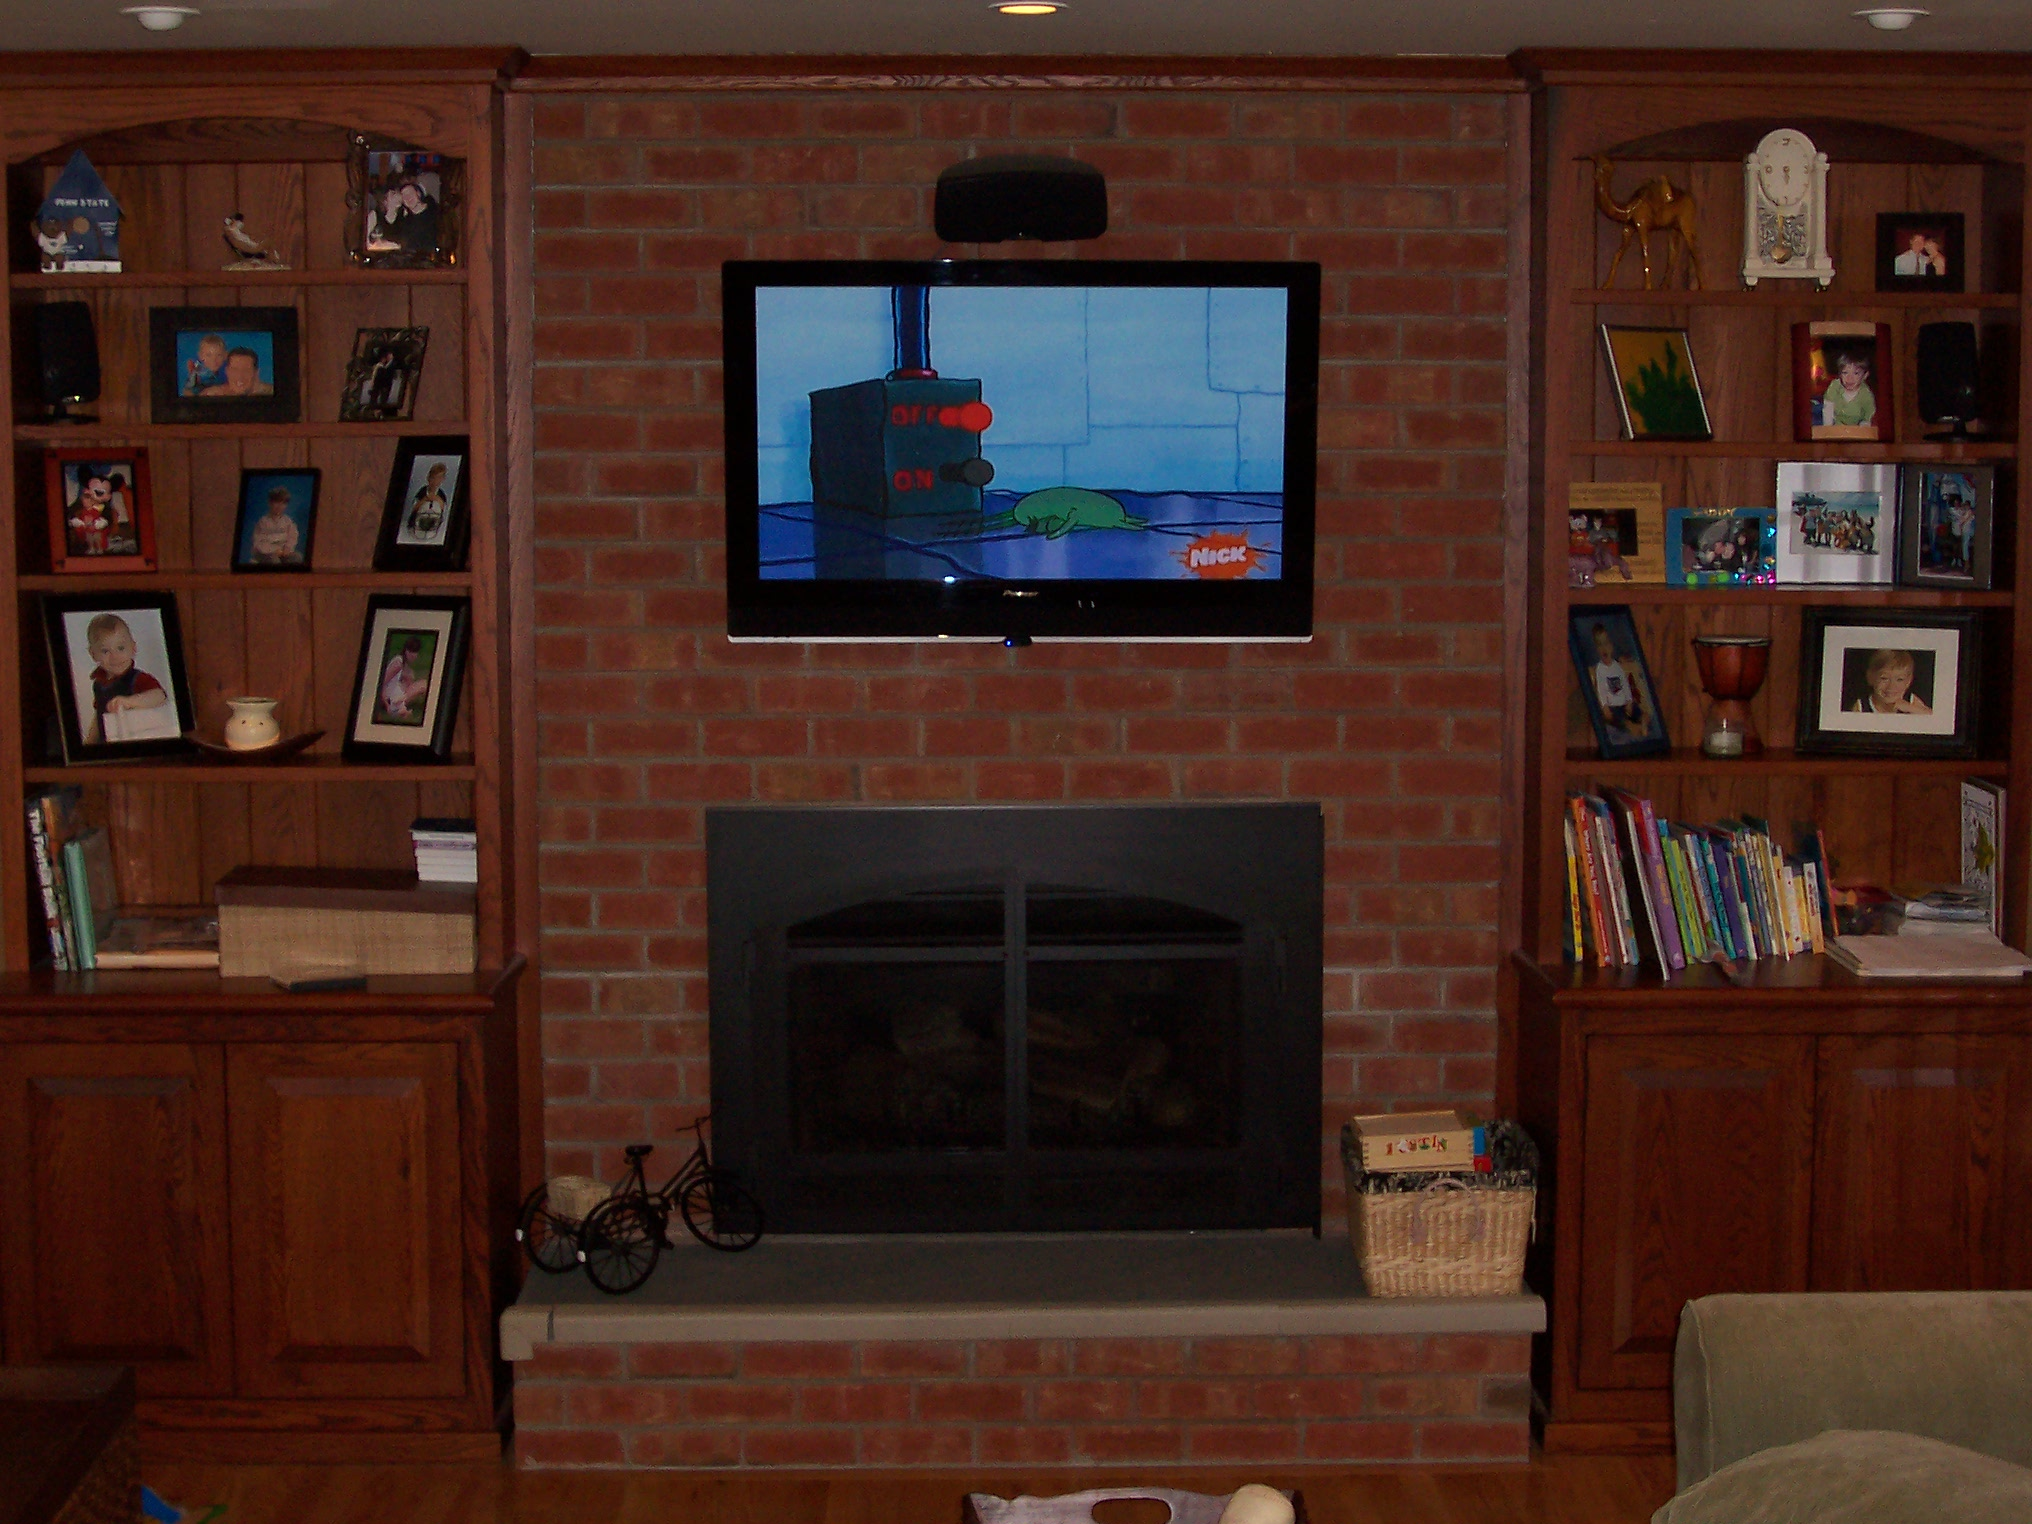 Tile A Kitchen Floor Under Cabinets Custom Oak Cabinets To Flank The Fireplace. We Also Added